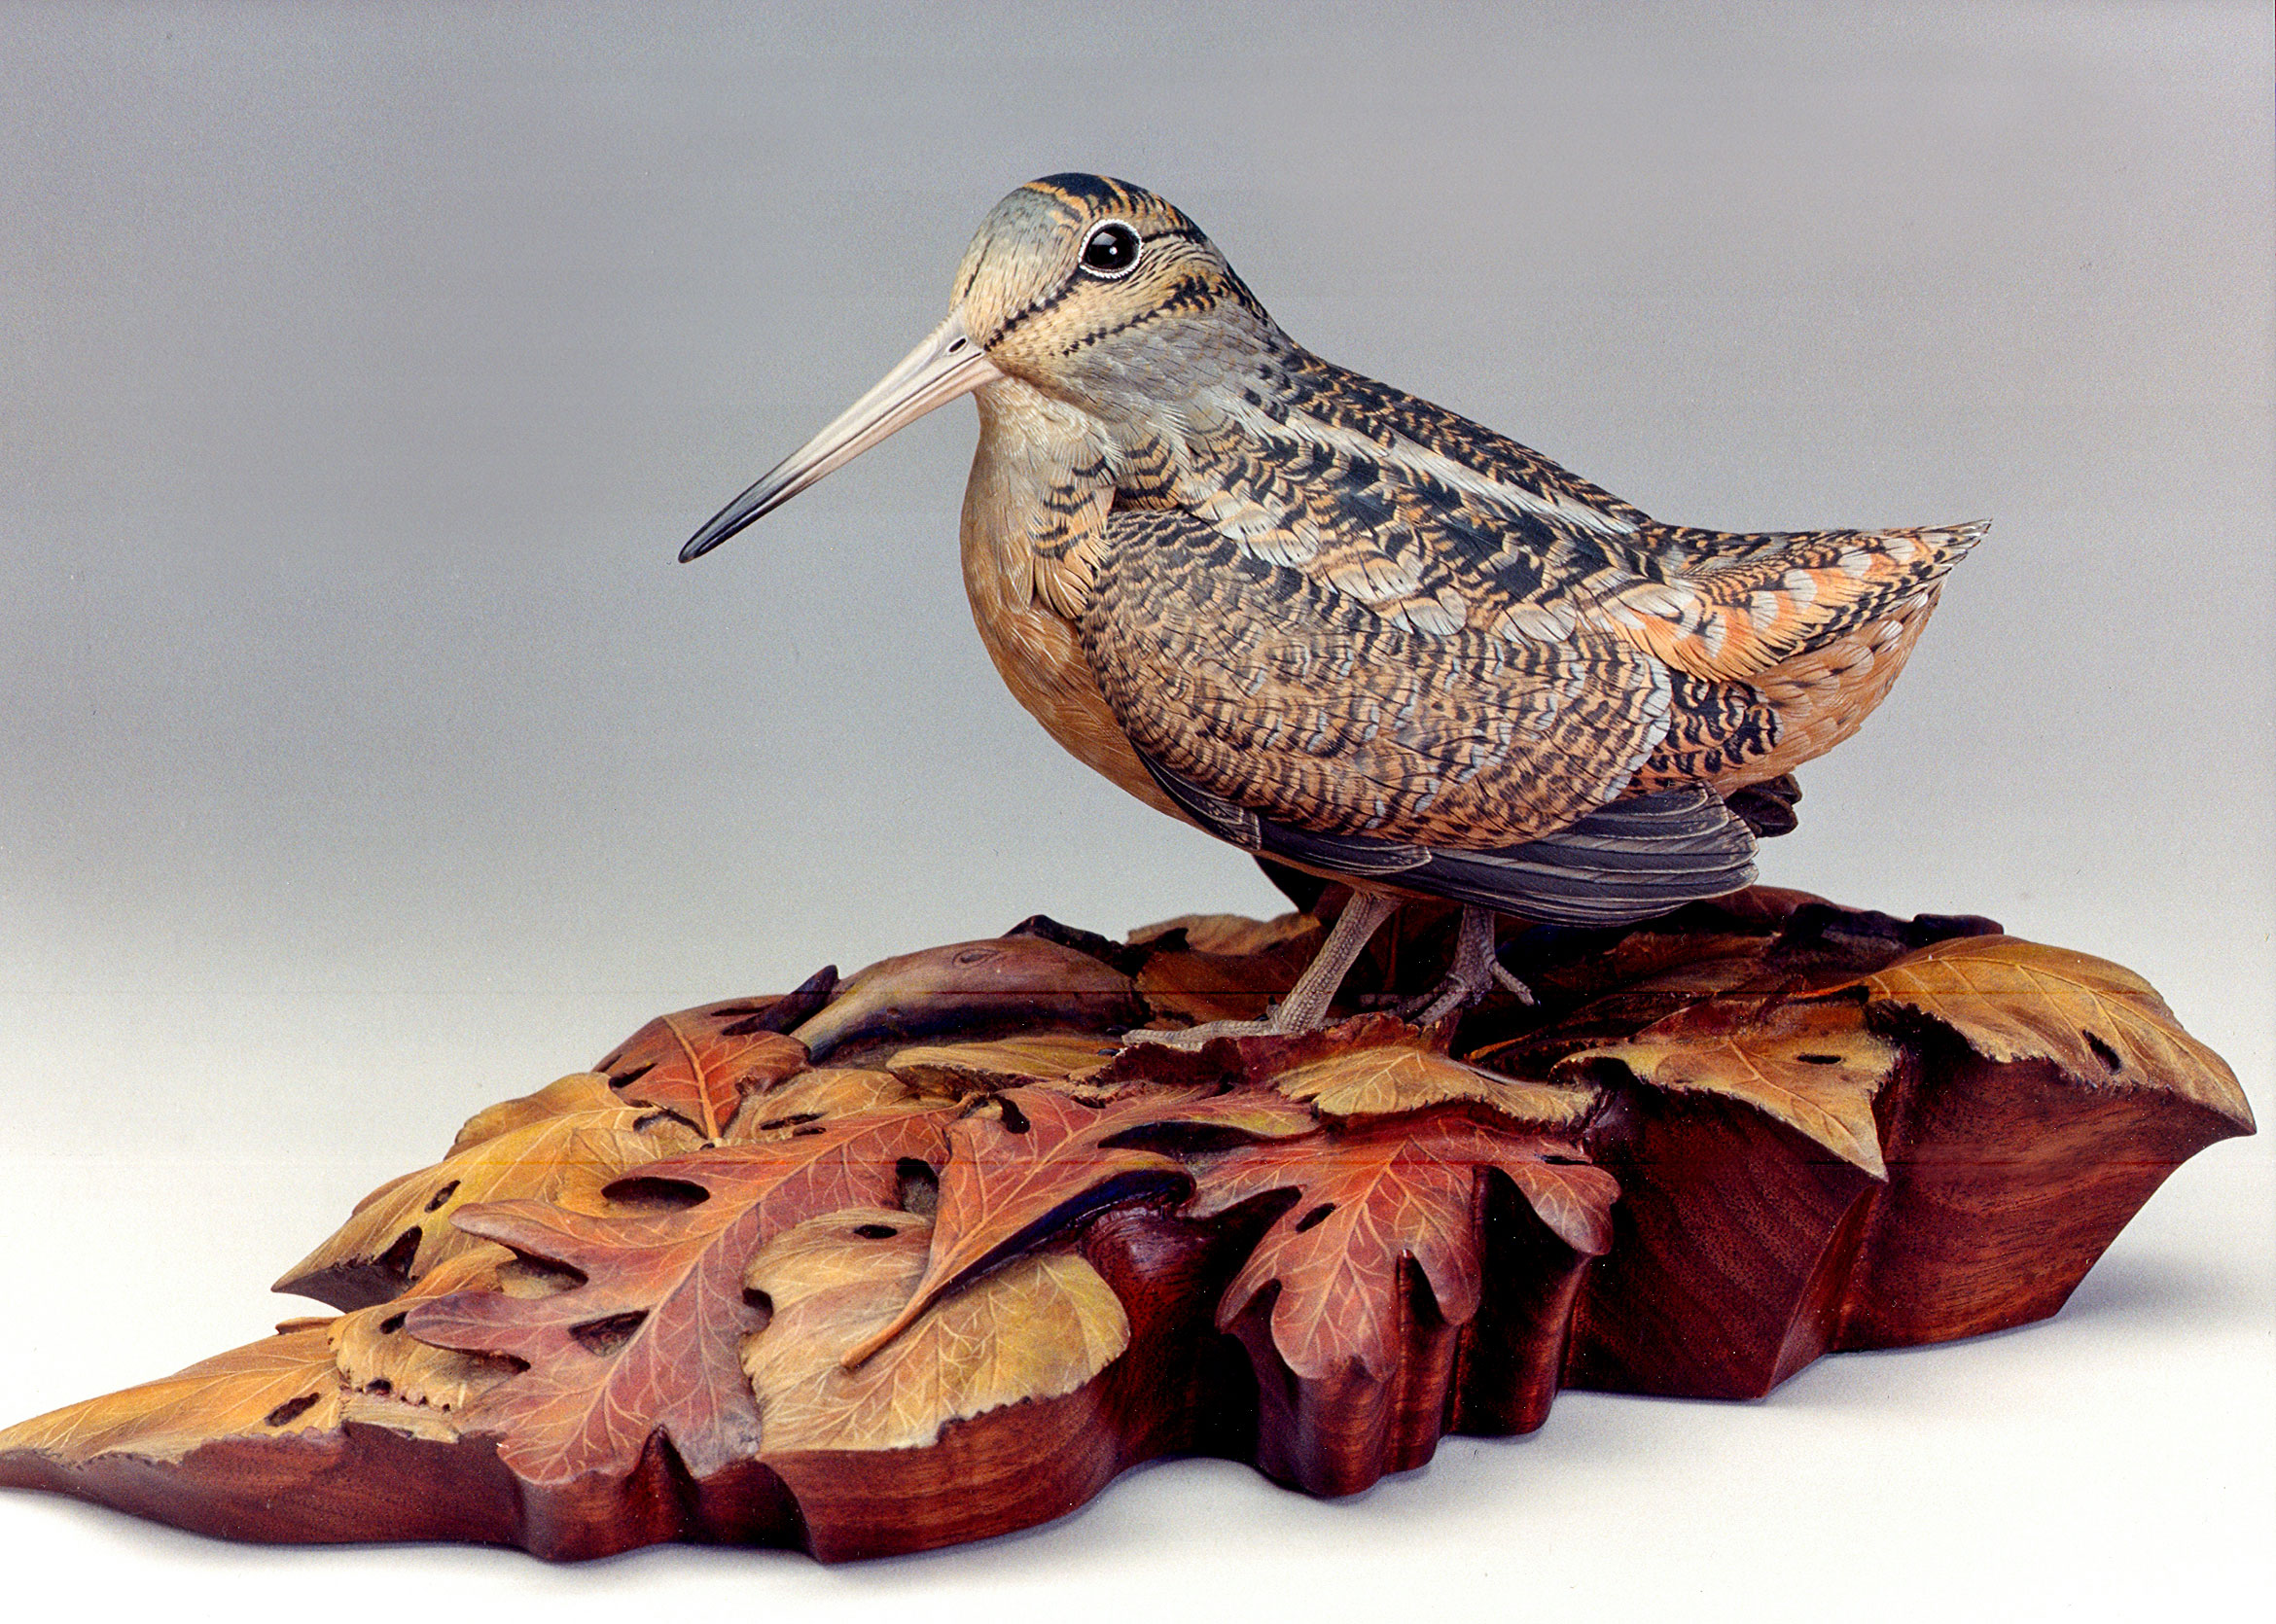 An American Woodcock by Pat Godin. Courtesy of the artist